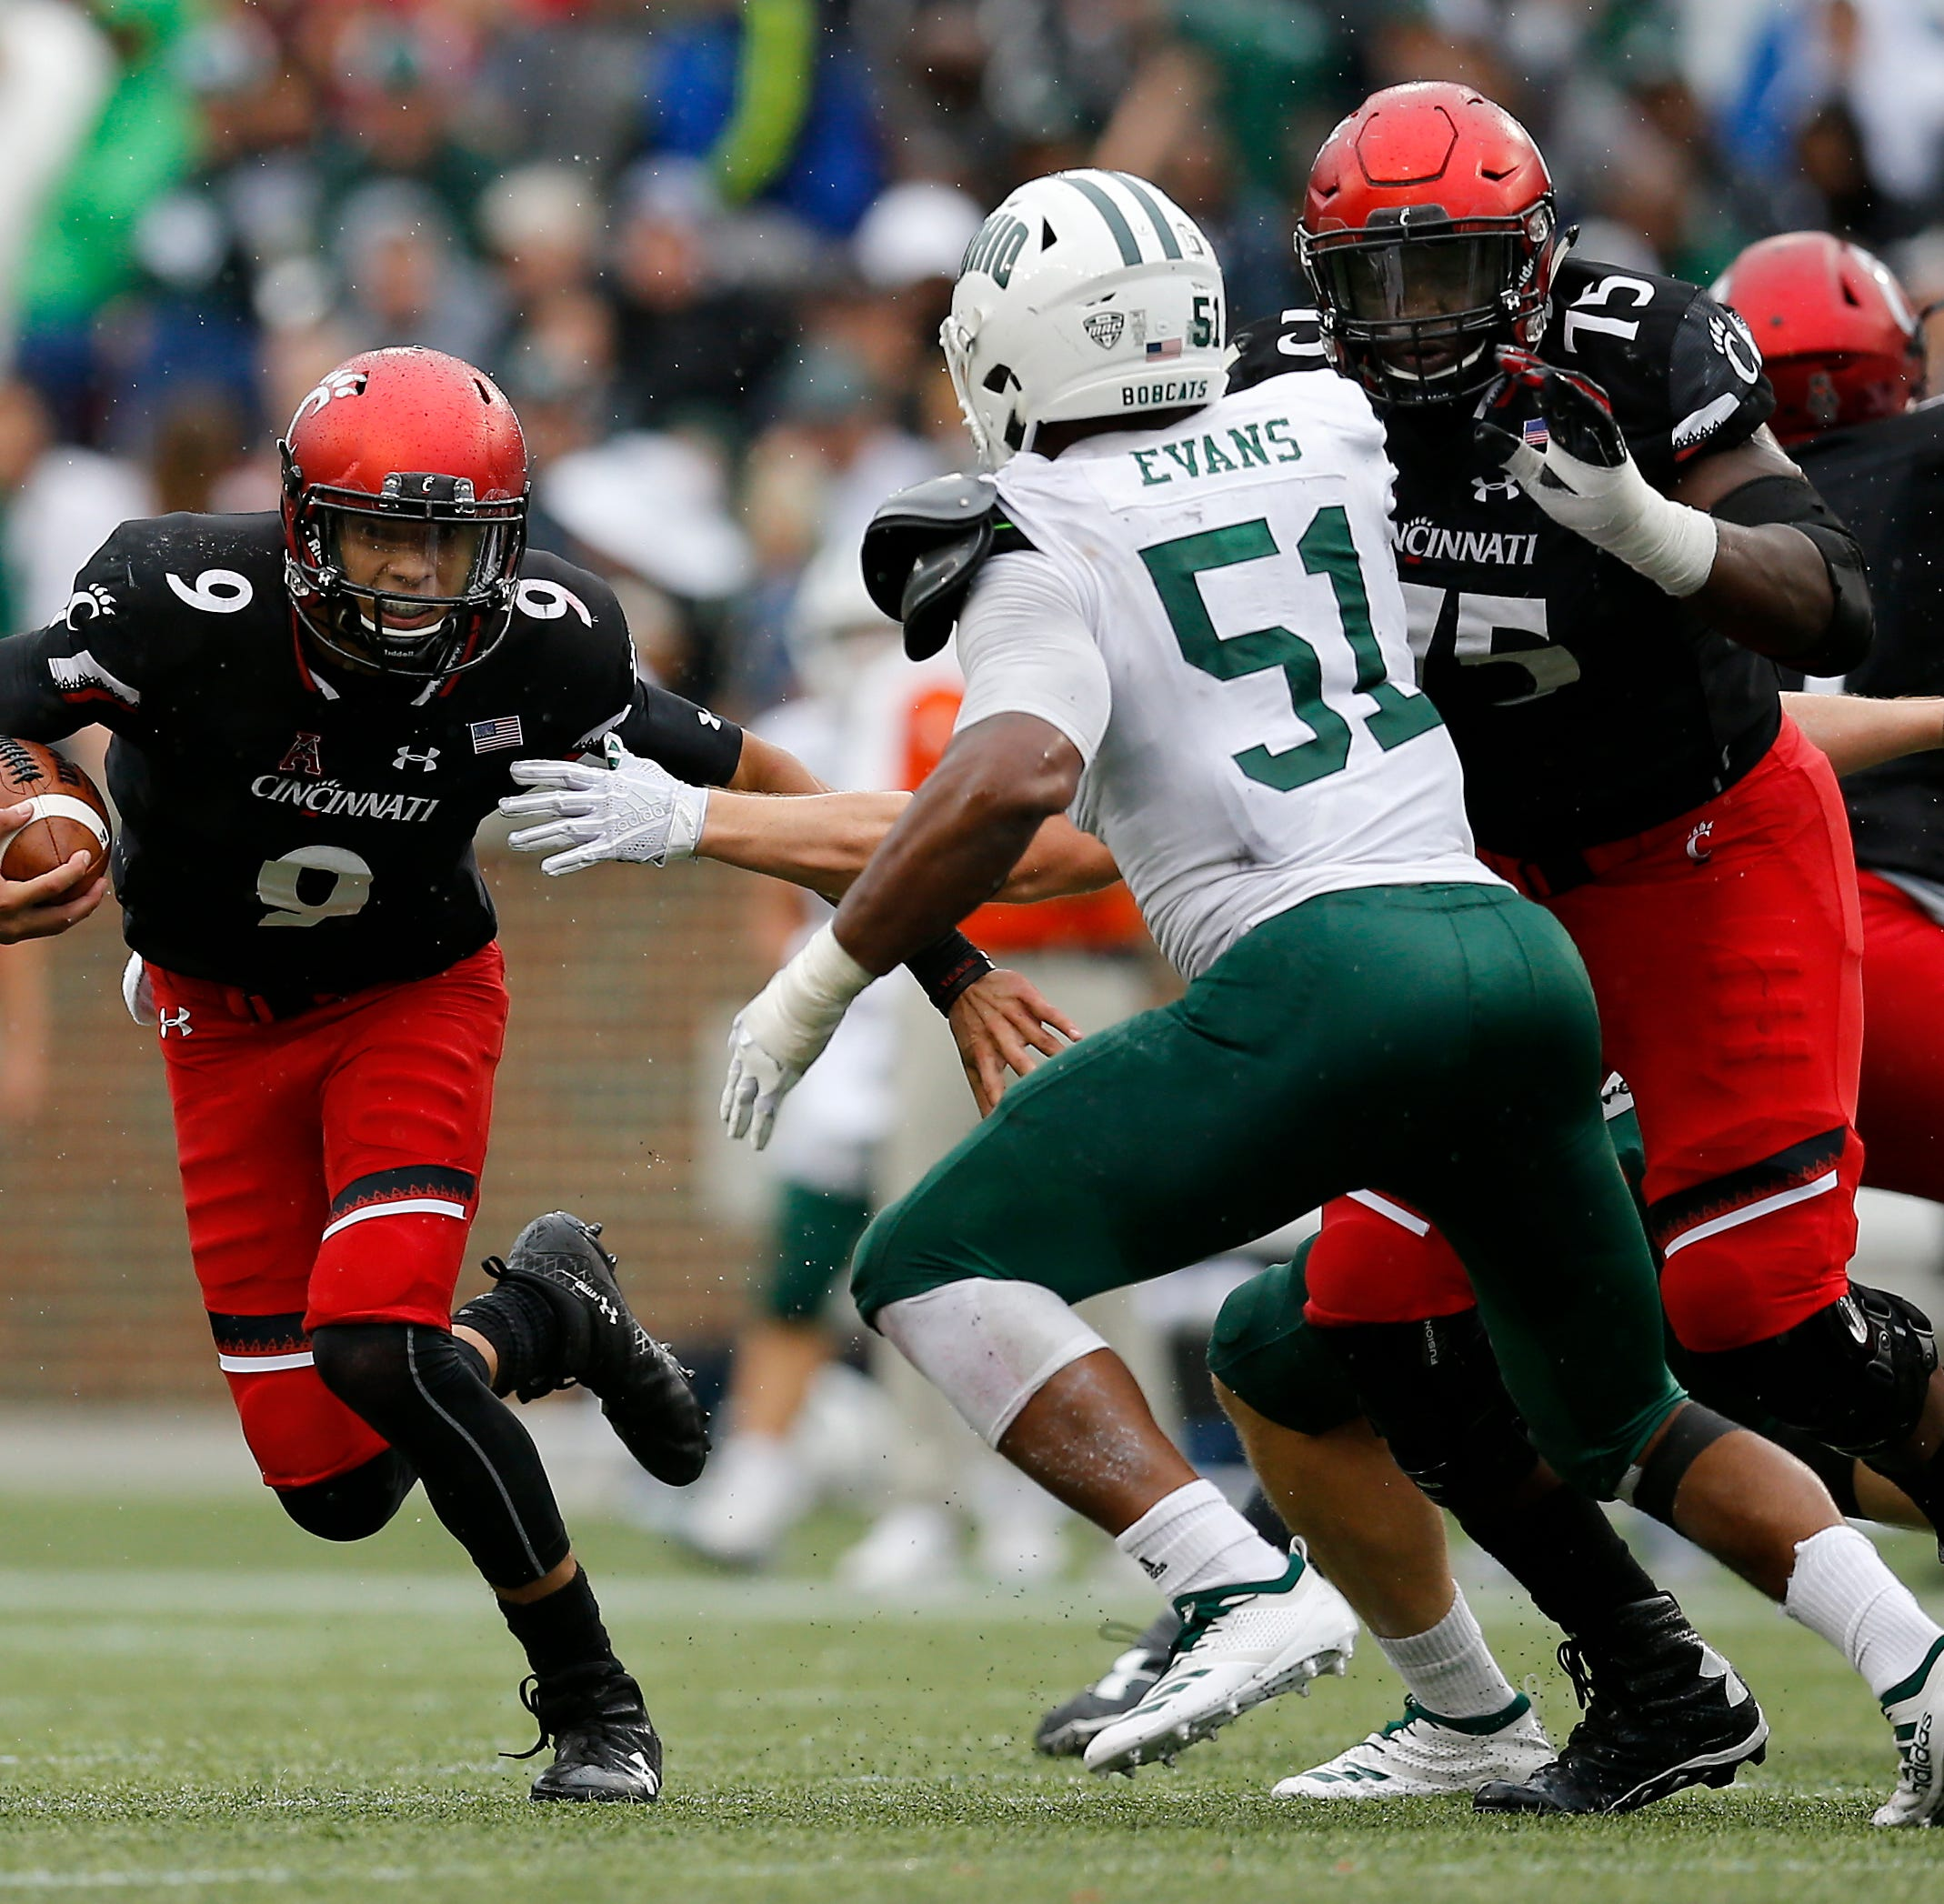 Instant analysis: UC Bearcats rally from 21-point deficit, claim narrow win over Ohio U.